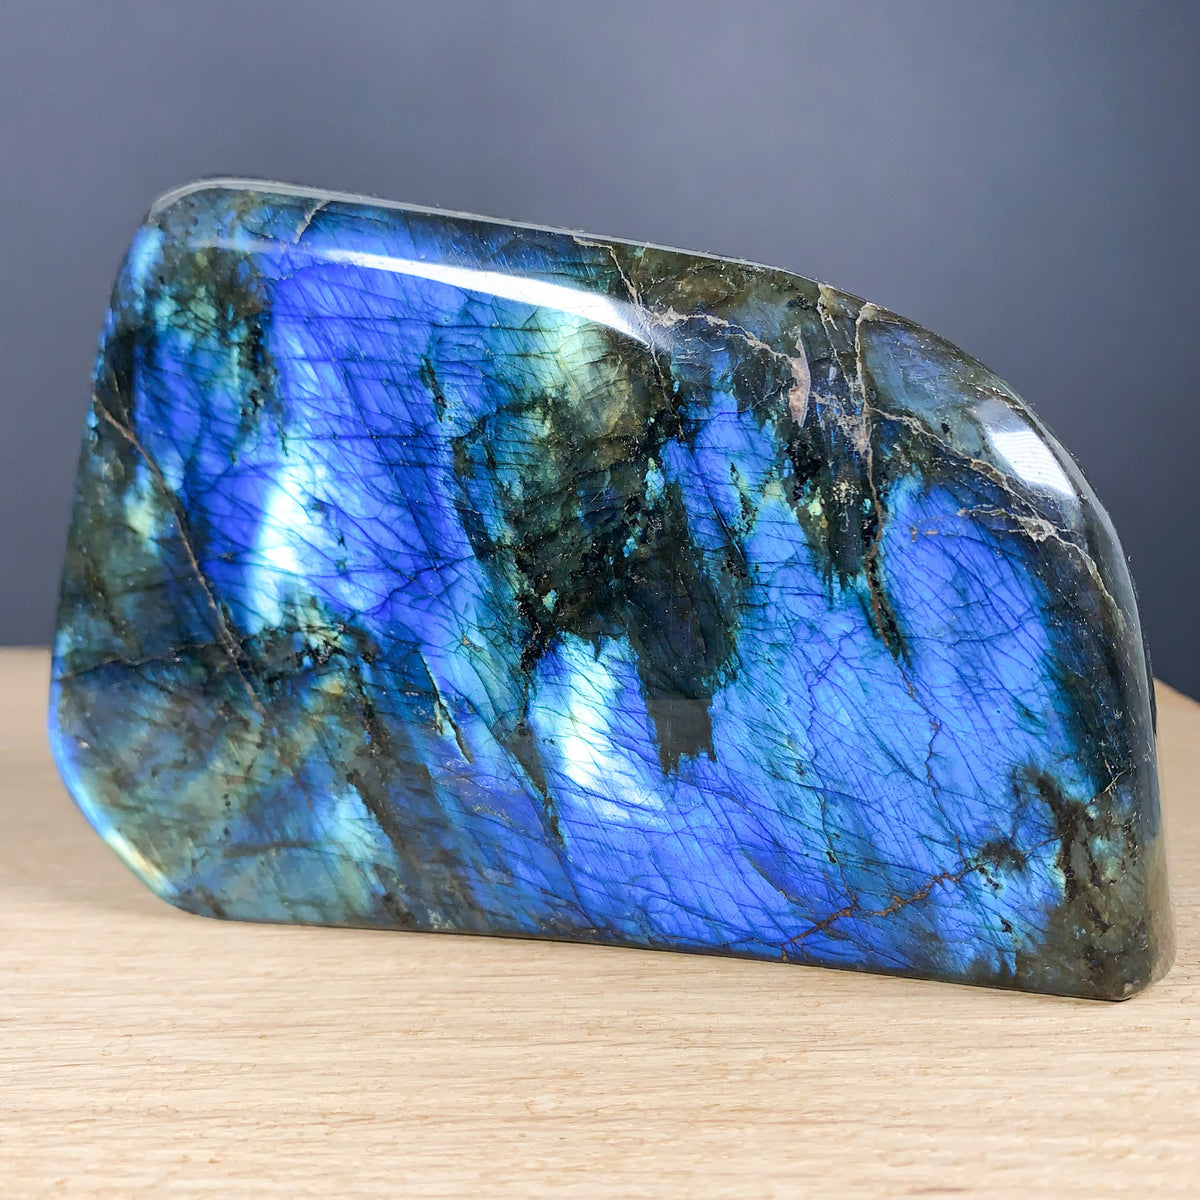 Labradorite Crystal - Blue and Gold Colors from Madagascar